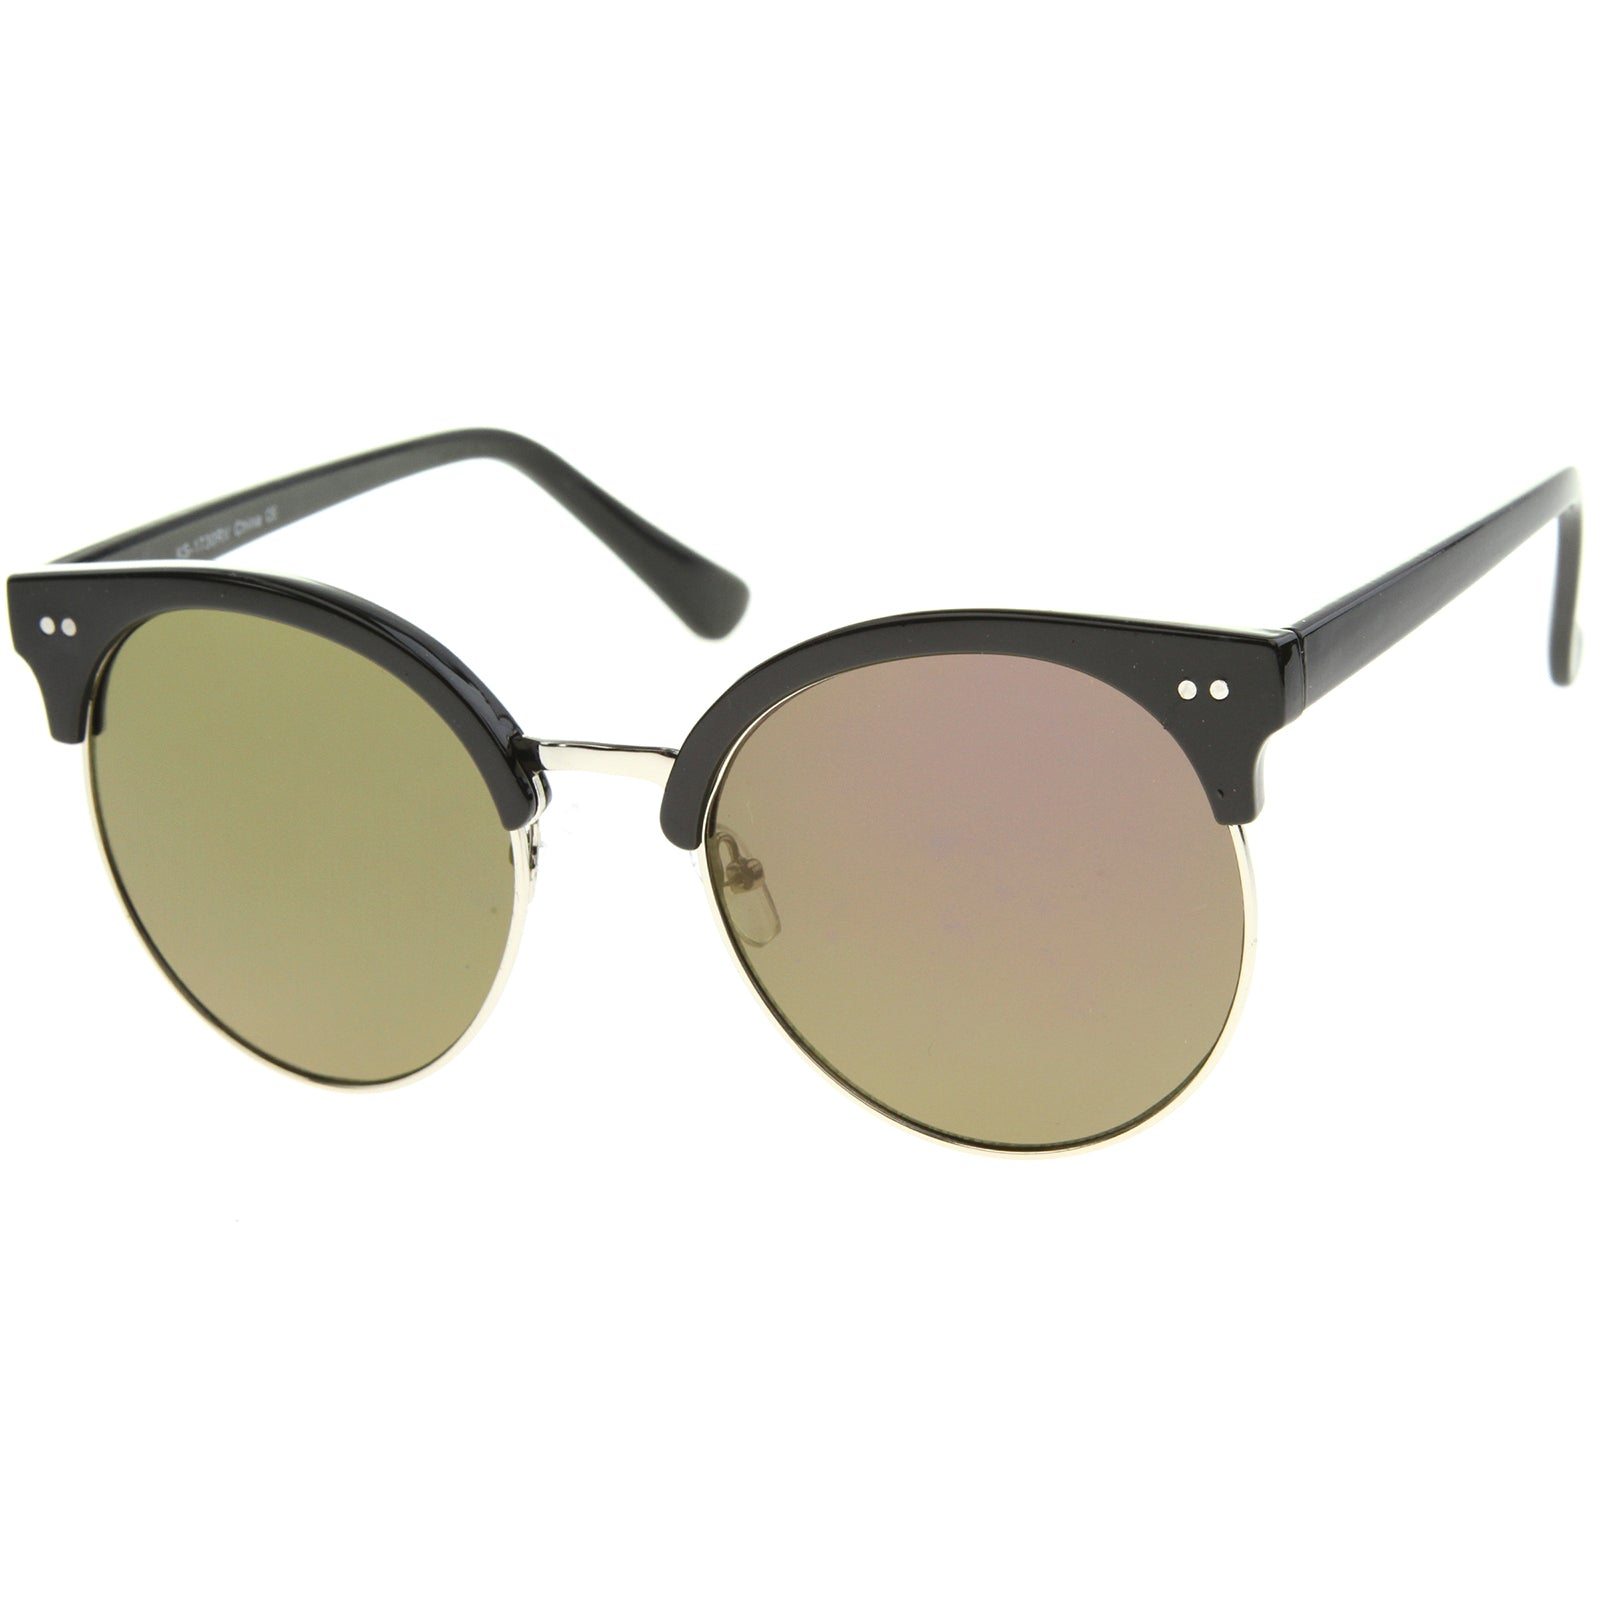 Womens Oversized Sunglasses With UV400 Protected Mirrored Lens - sunglass.la - 18